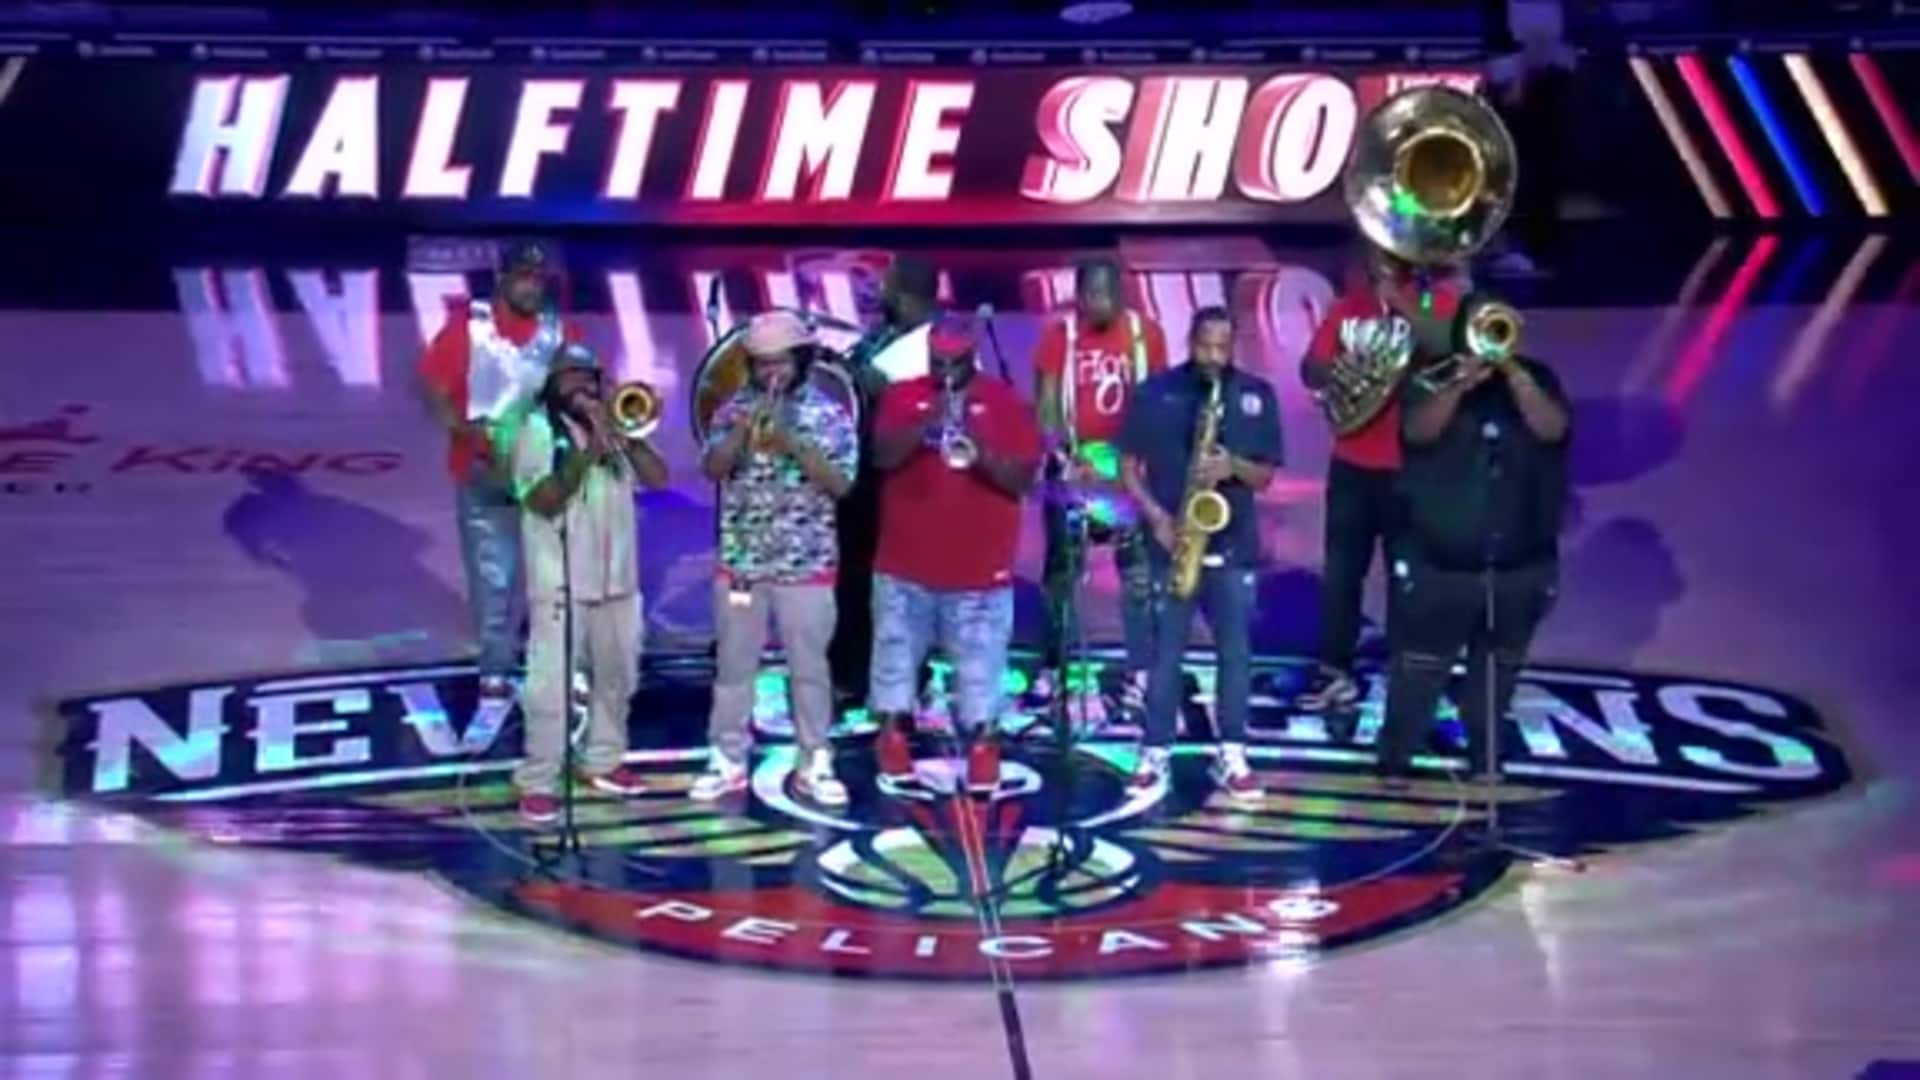 Pelicans Halftime: Hot 8 Brass Band - December 28, 2019 vs. Indiana Pacers